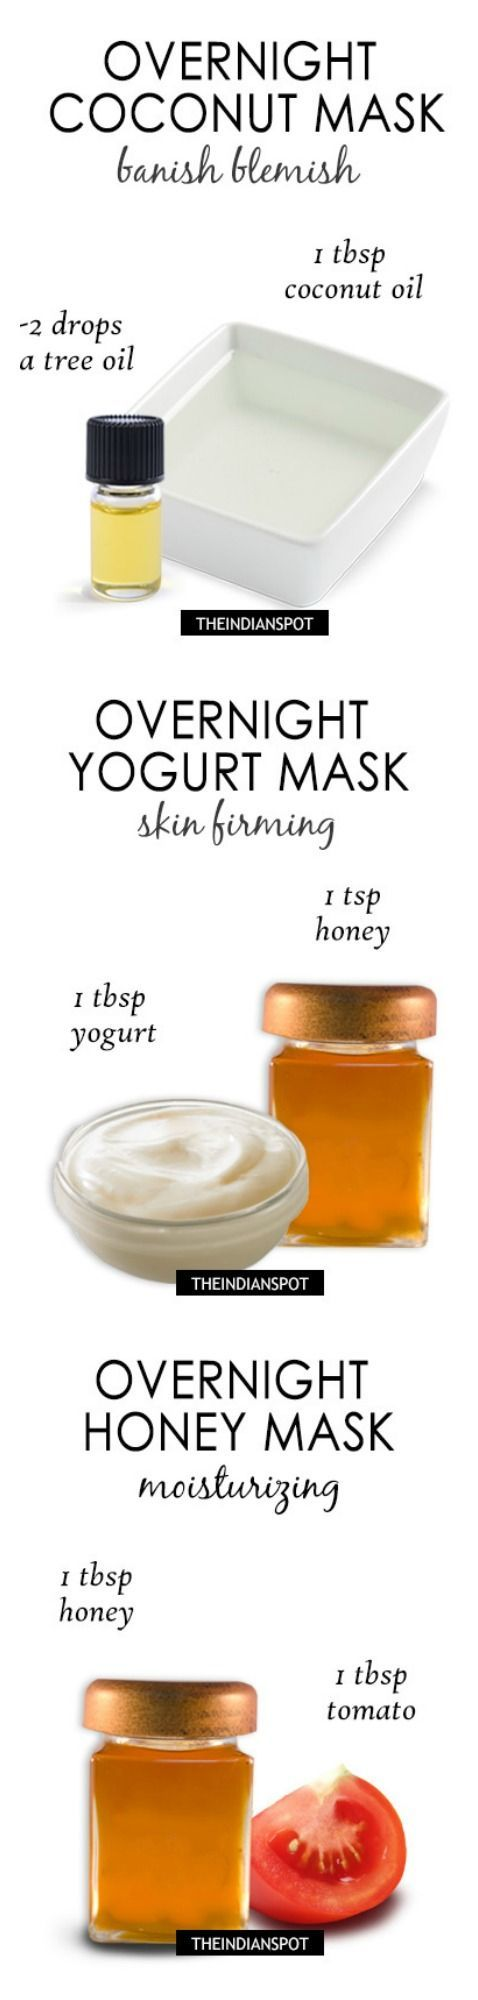 diy overnight face masks for clear, healthy and glowing skin